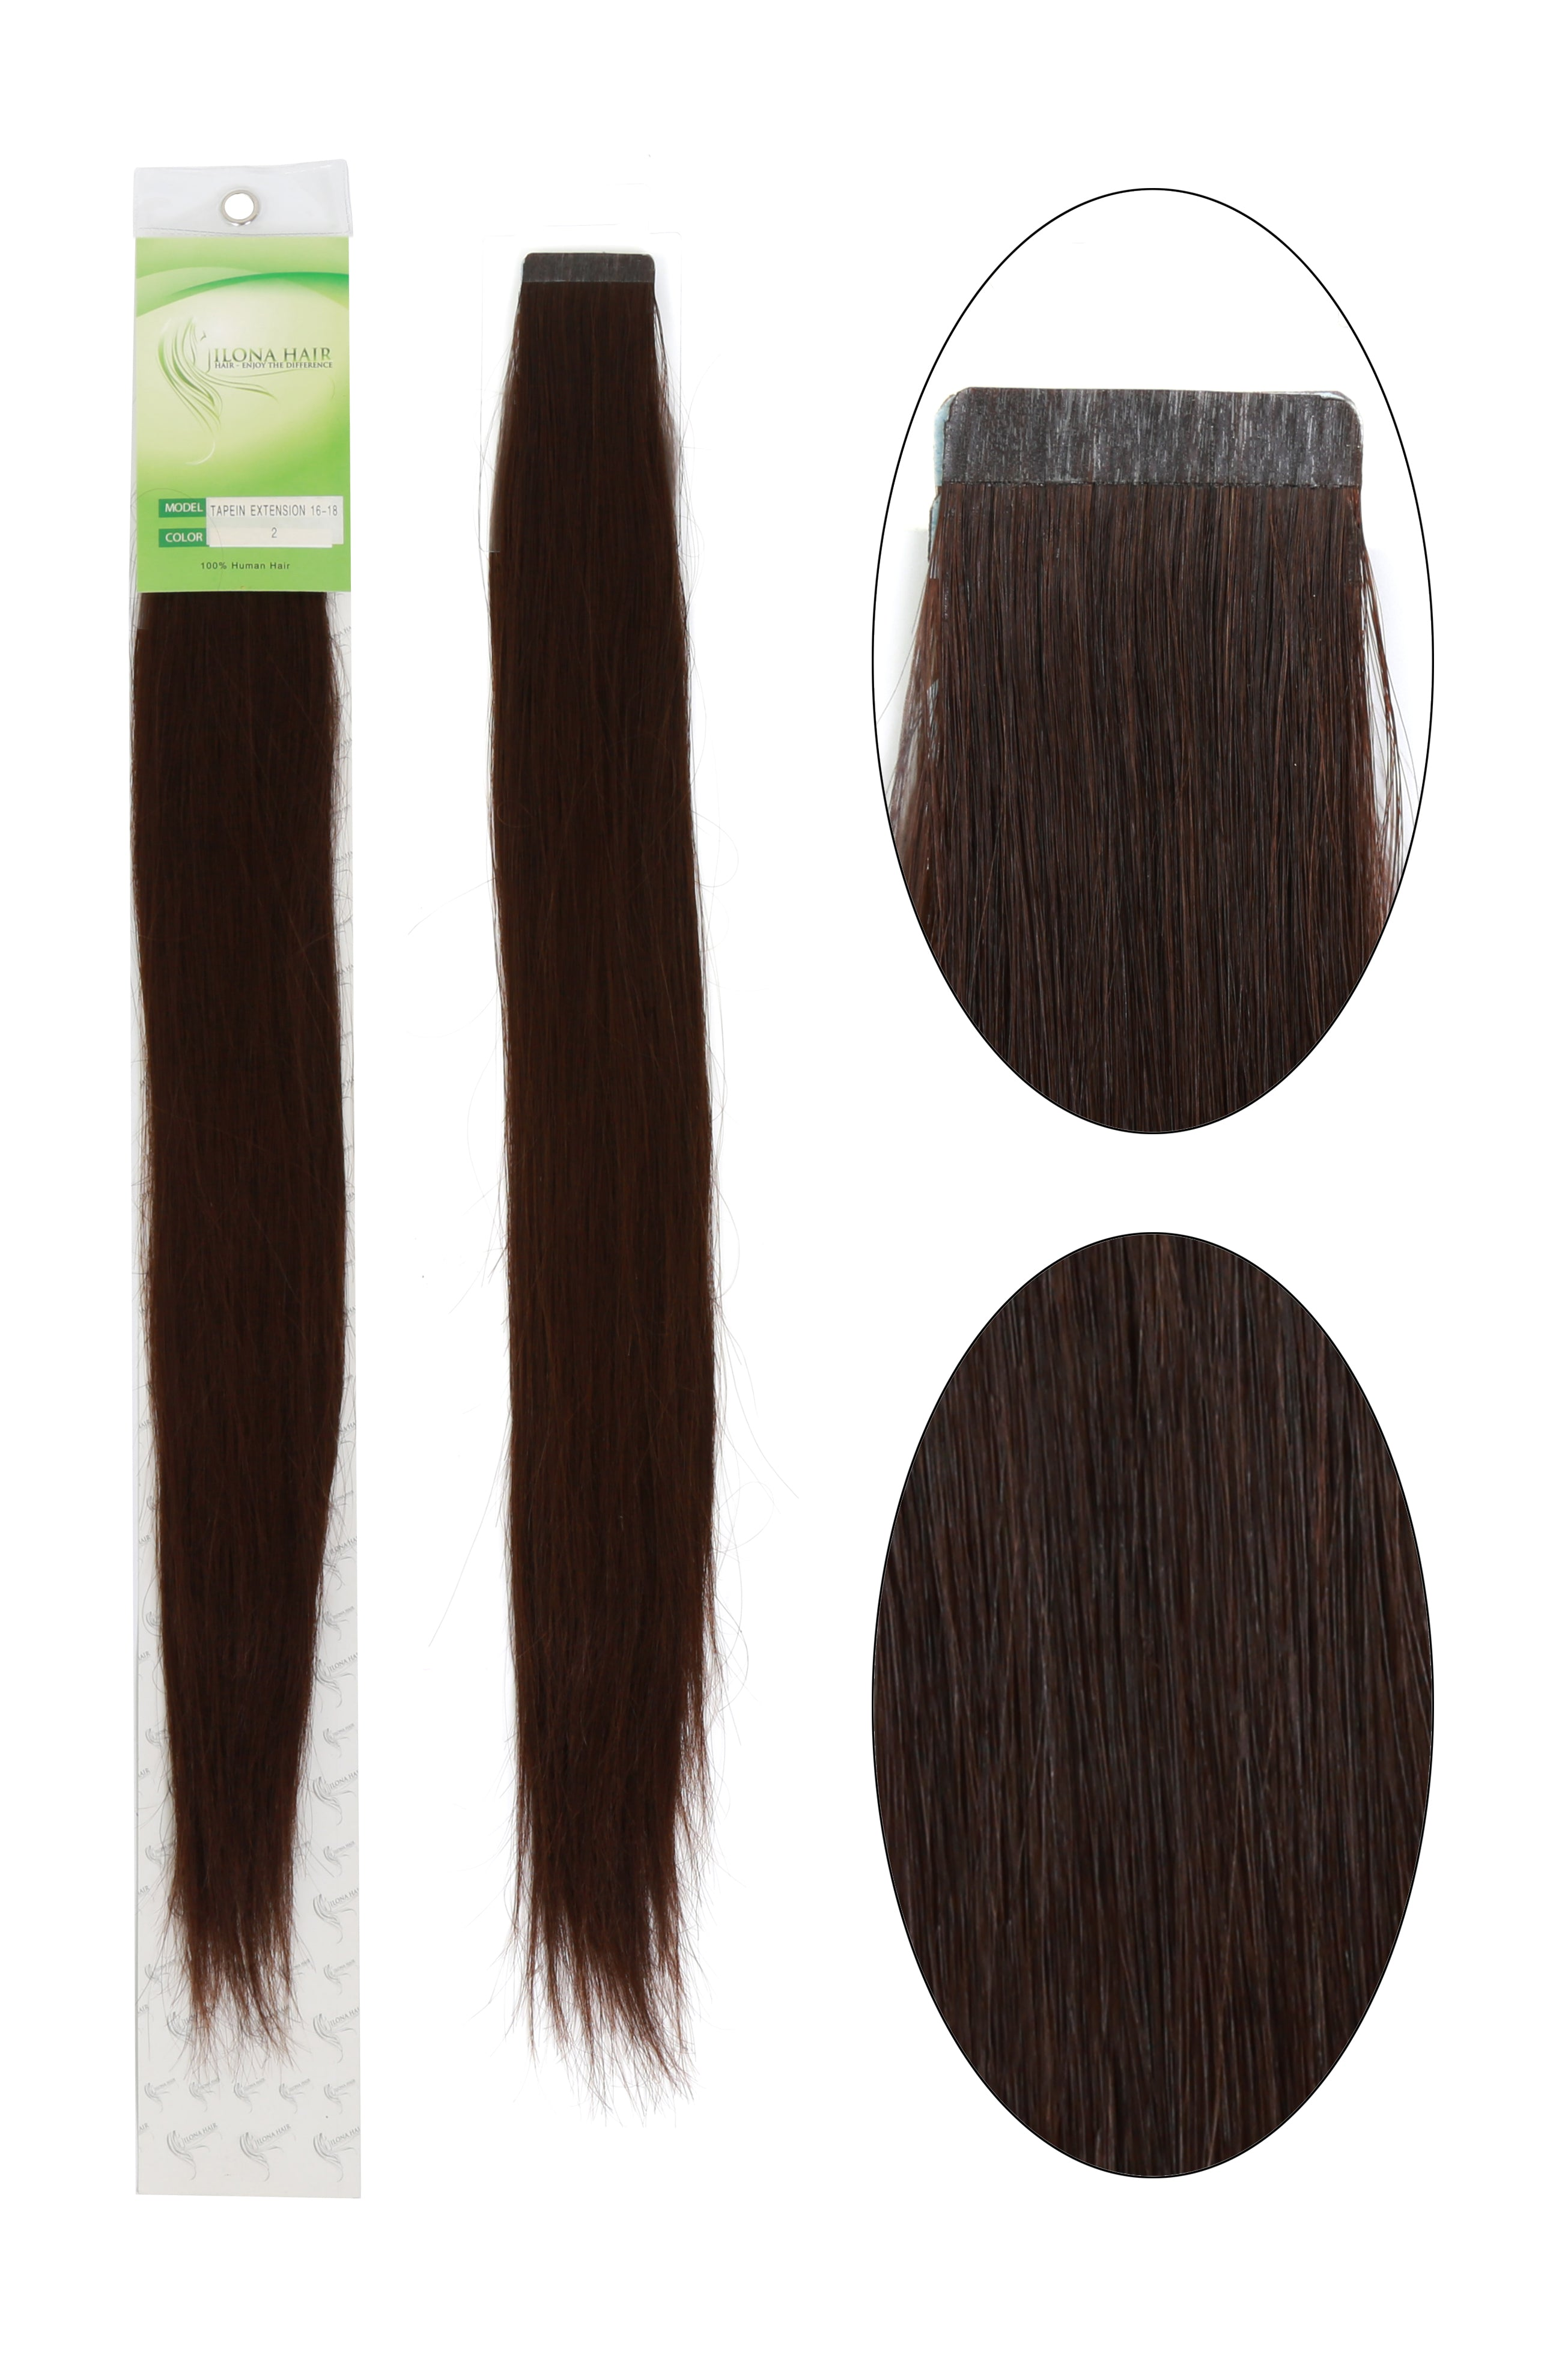 18 32 Human Hair Tape In Extensions 12 Colors Ilona Hair